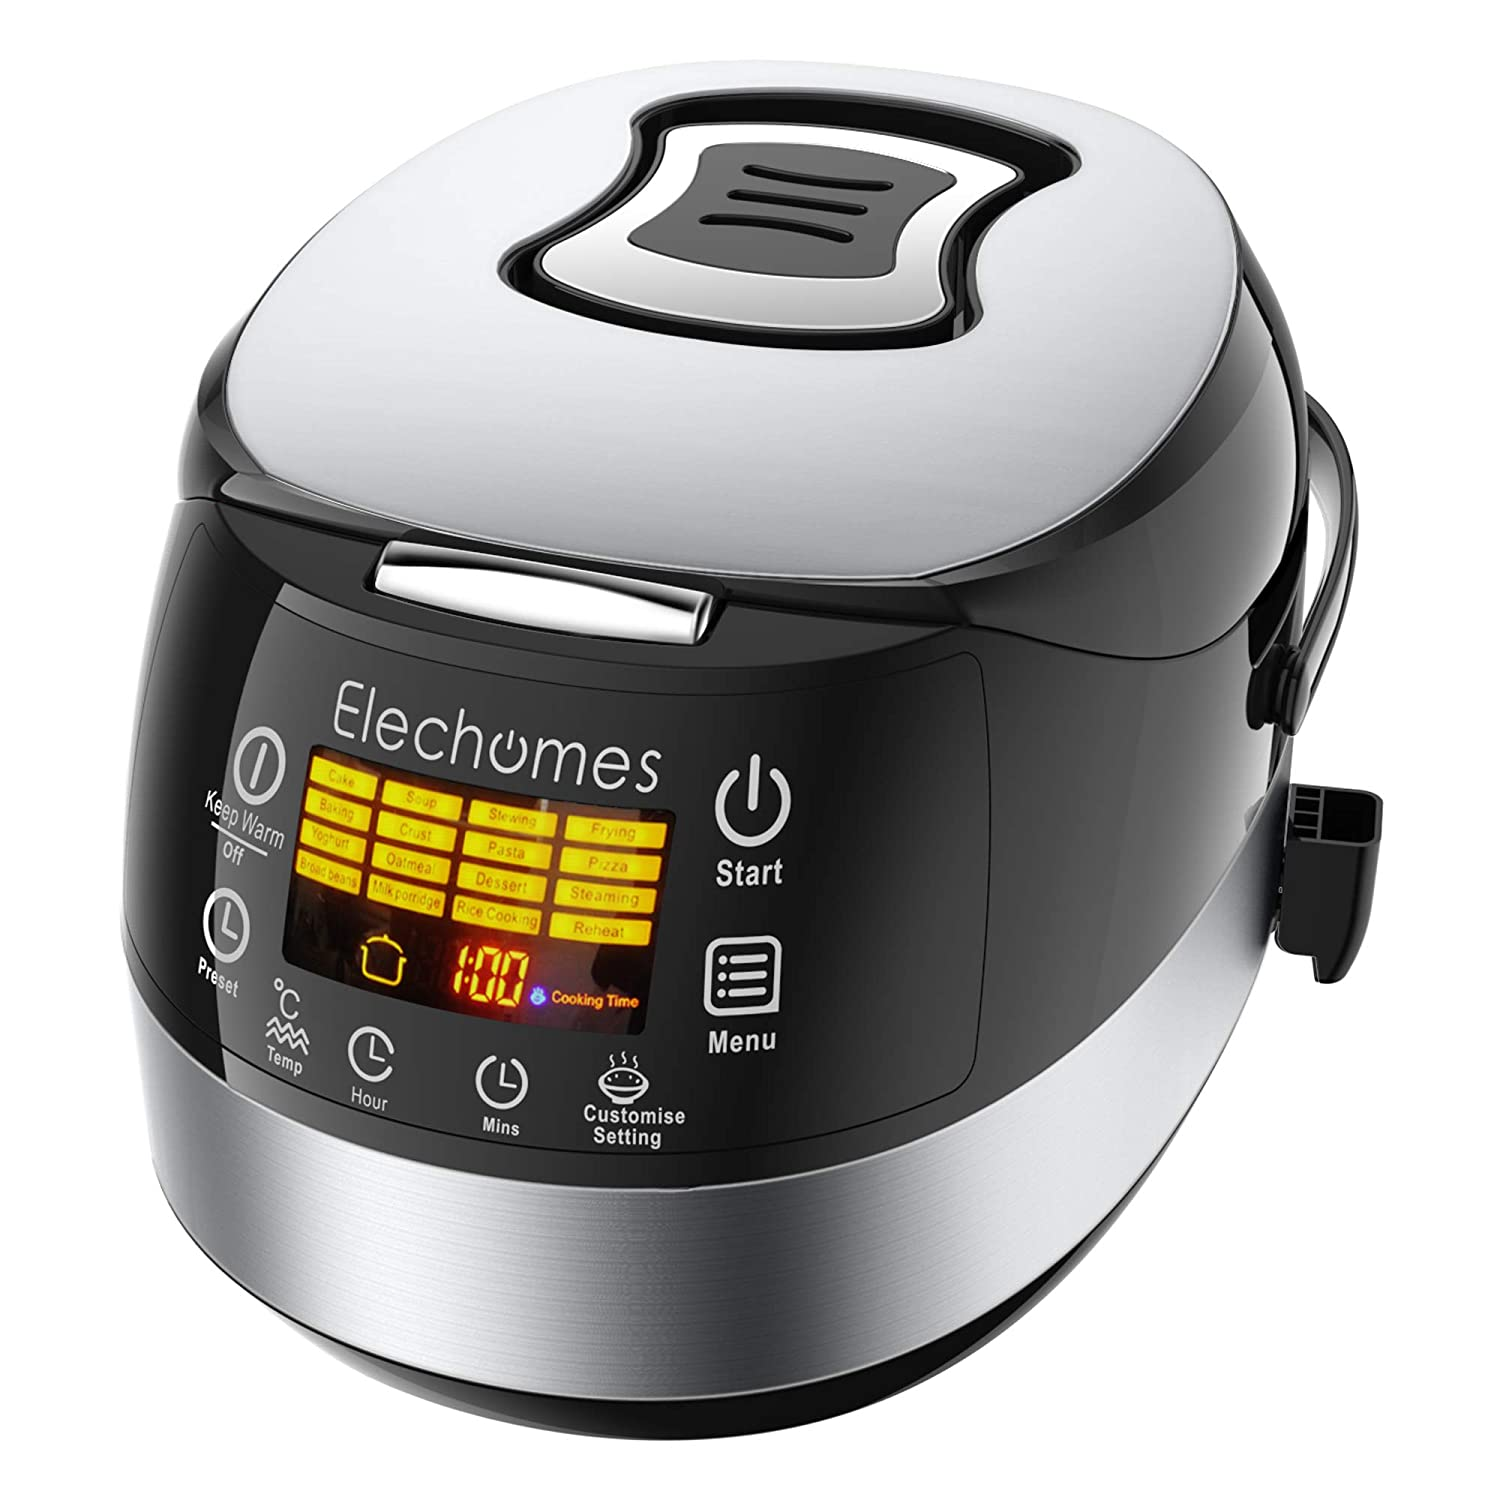 Elechomes LED Touch Control Rice Cooker, 16-in-1 Multi-function Cooker, 10-Cups Uncooked Warmer Cooker with Steam & Rinse Basket, CR502 (CR502-2)